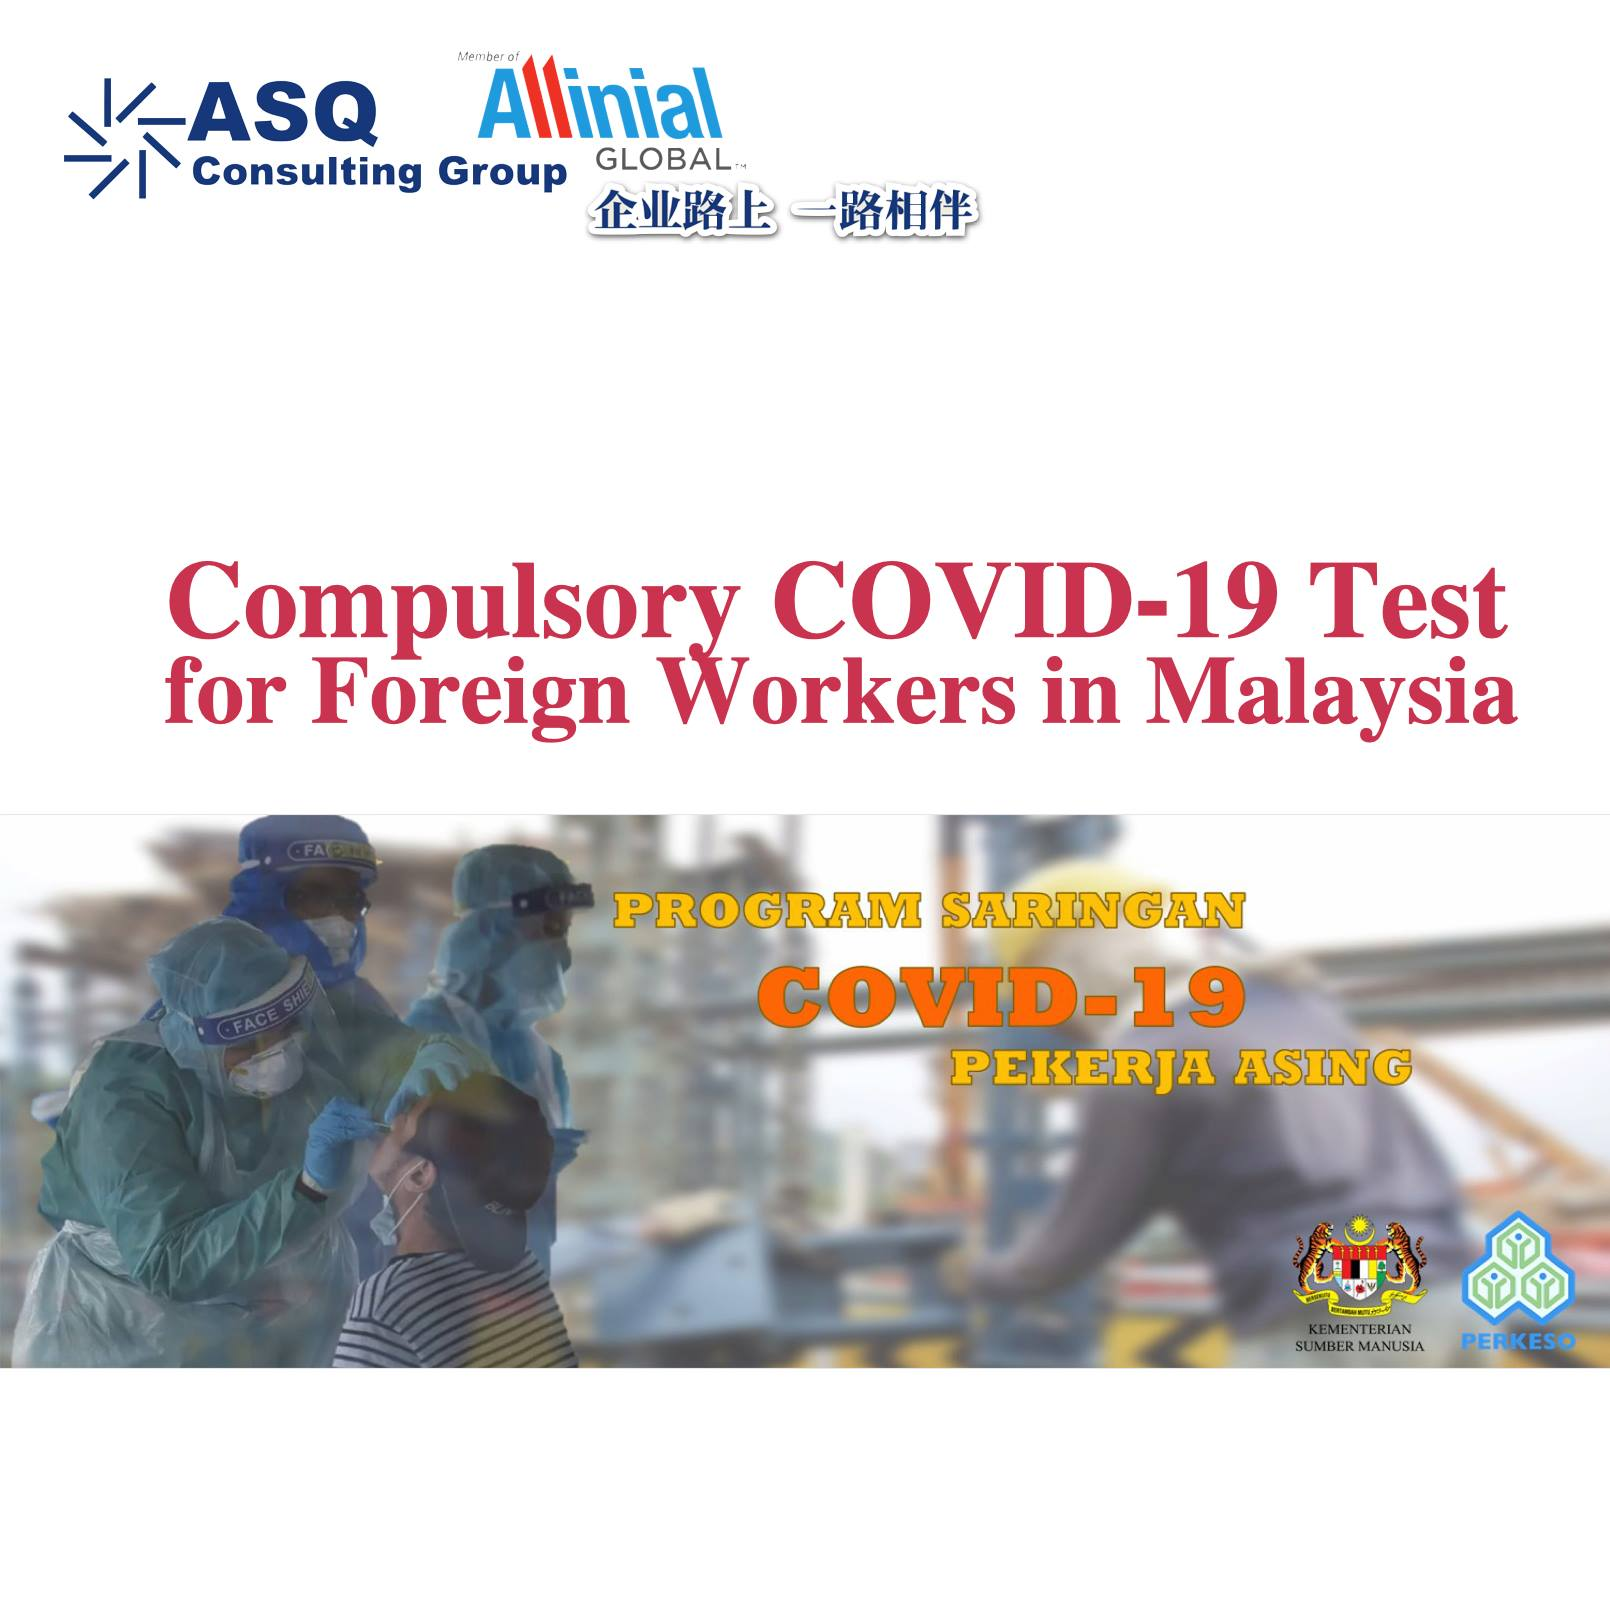 Compulsory COVID-19 Test for Foreign Wokers in Malaysia